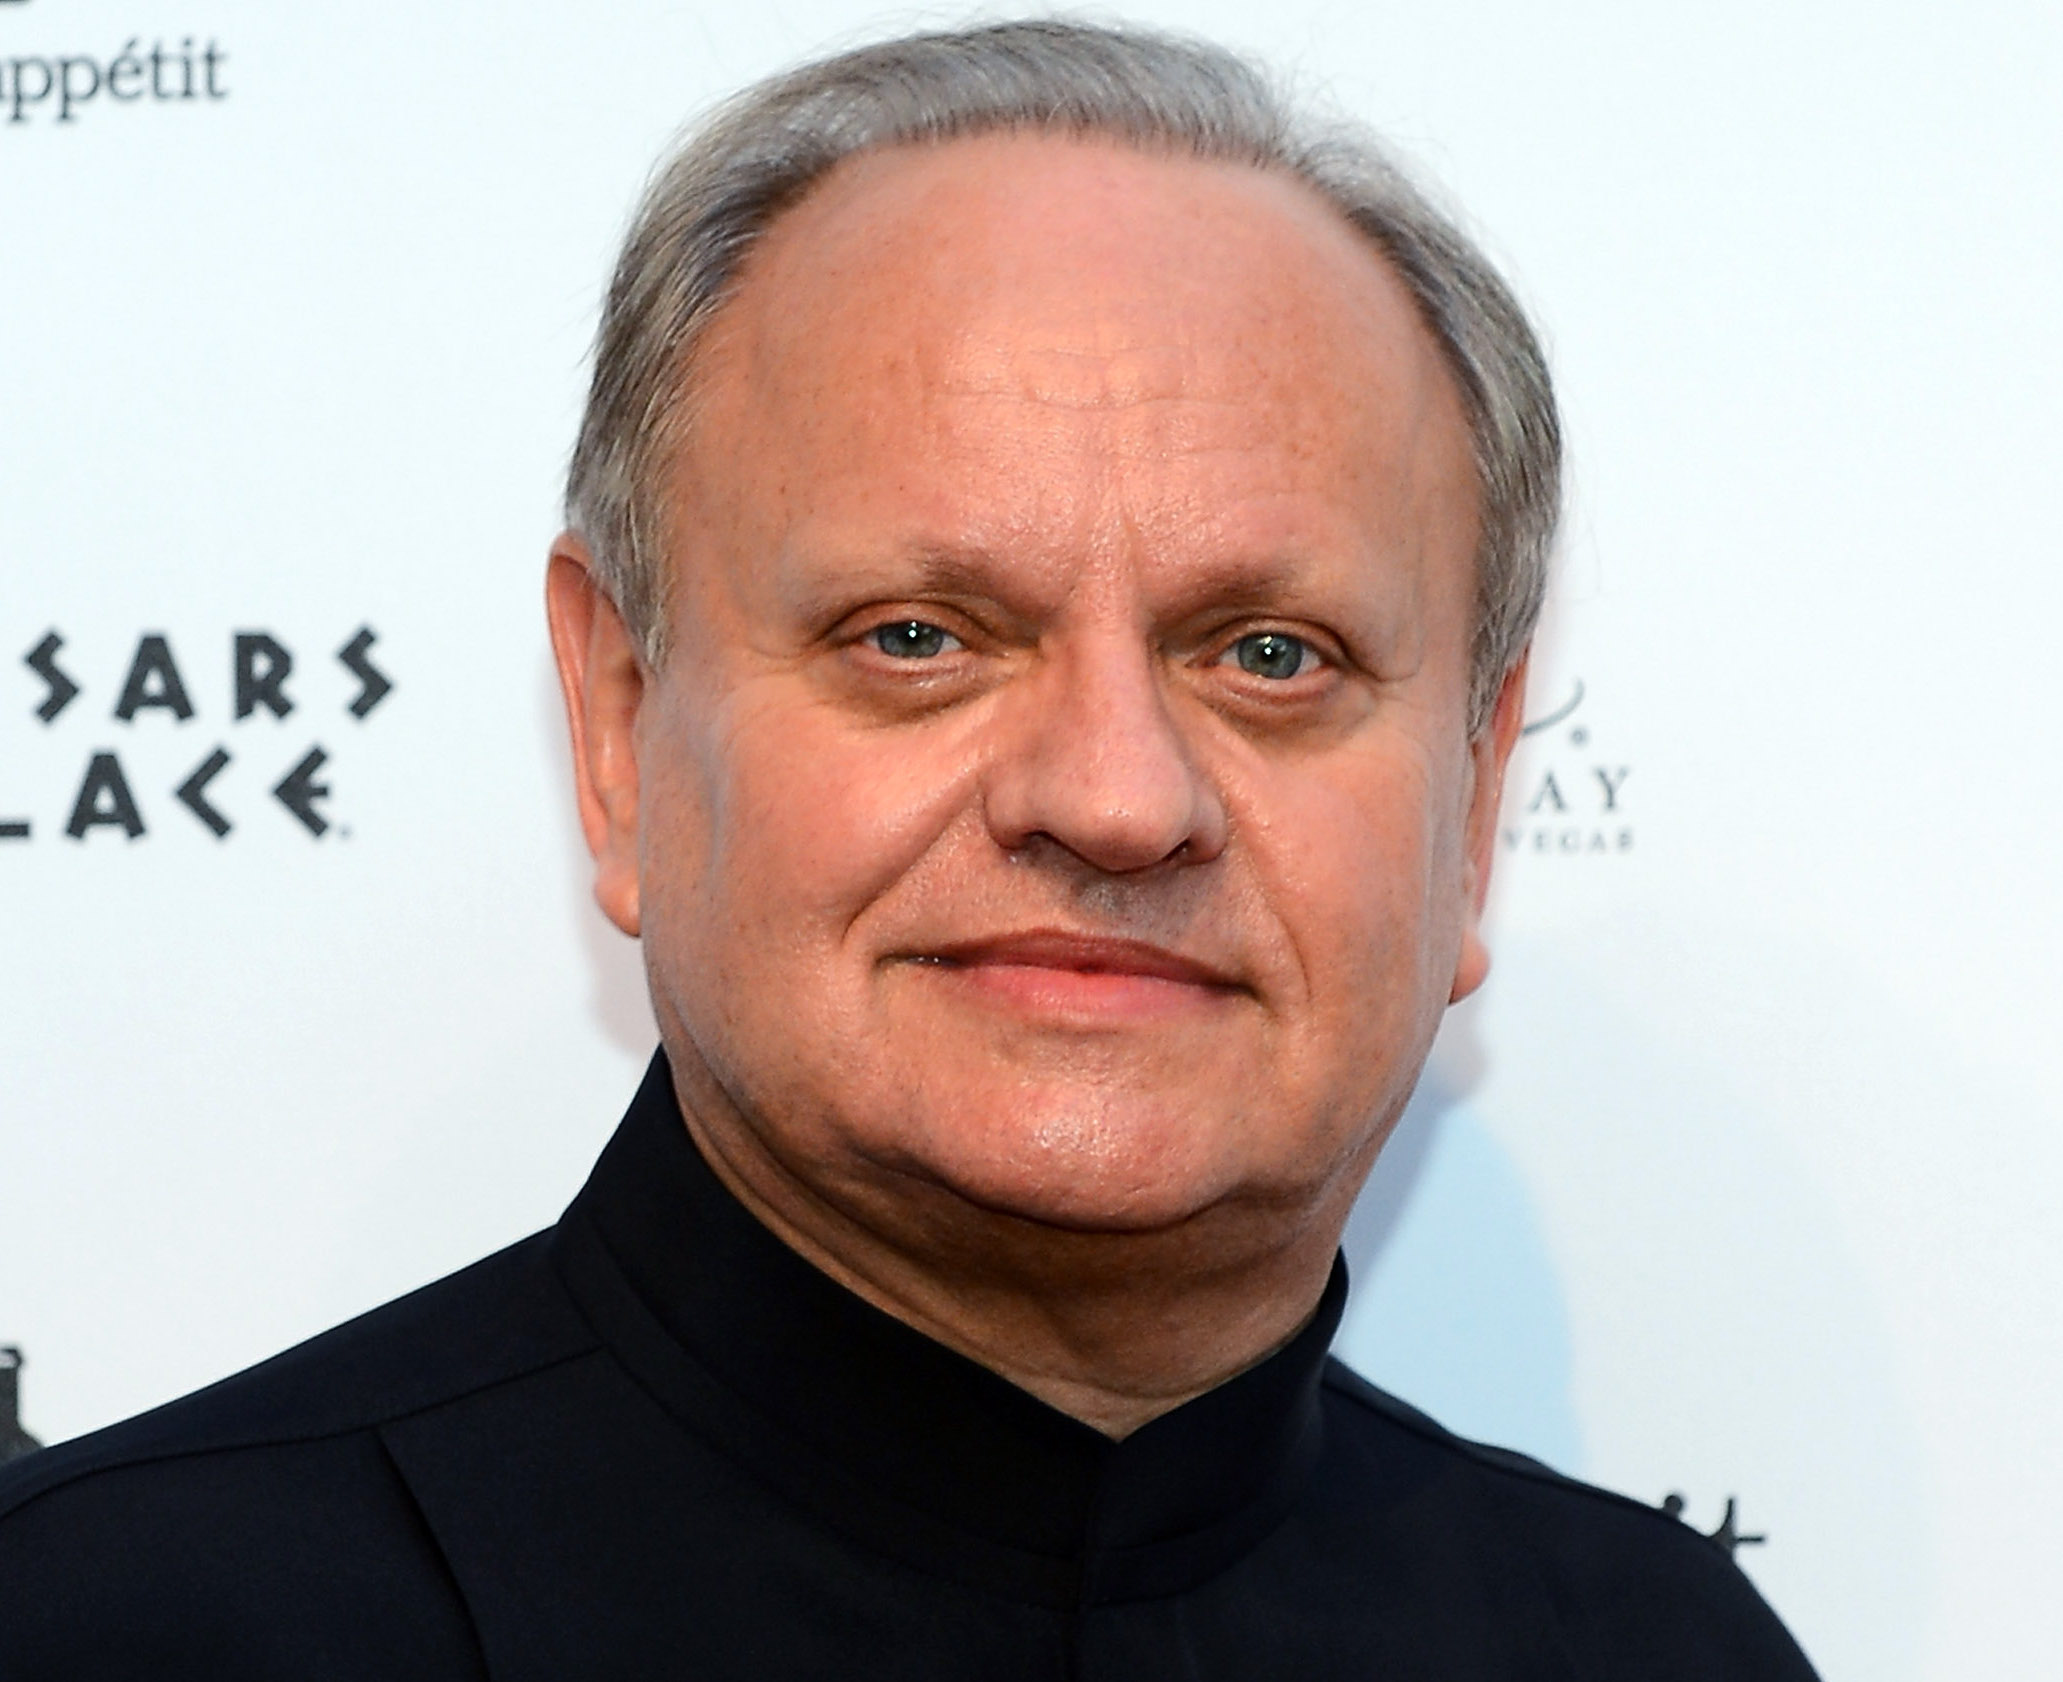 Chef Joel Robuchon, whose London restaurant L'Atelier de Joel Robuchon was reviewed by restaurant critic Marina O'Loughlin for the Sunday Times